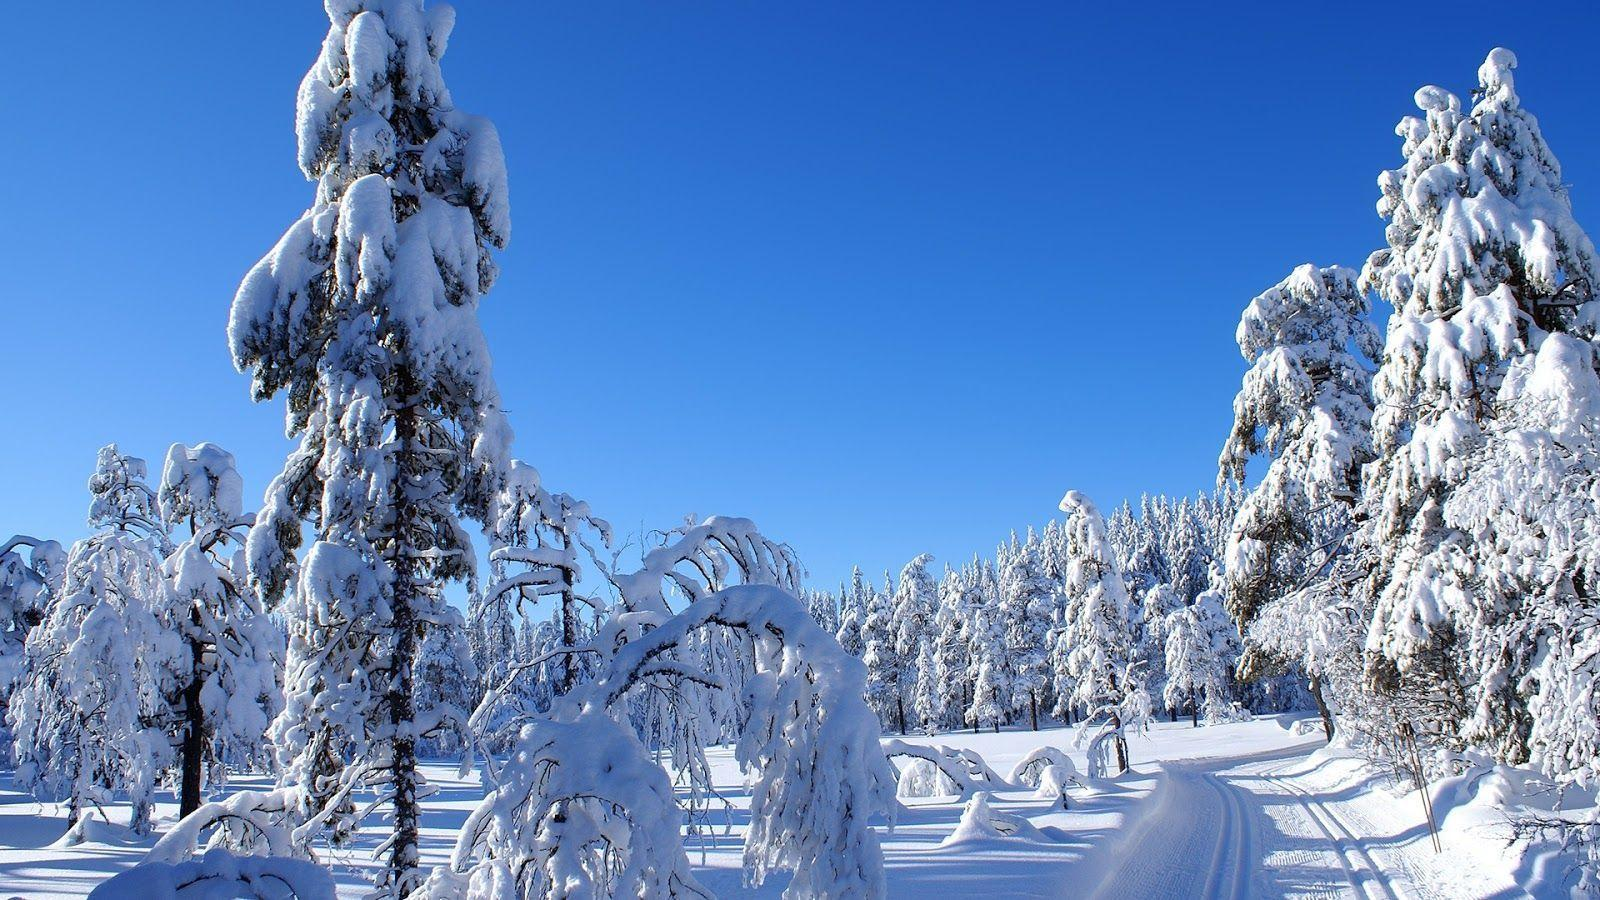 awesome nature wallpapers winter - photo #32